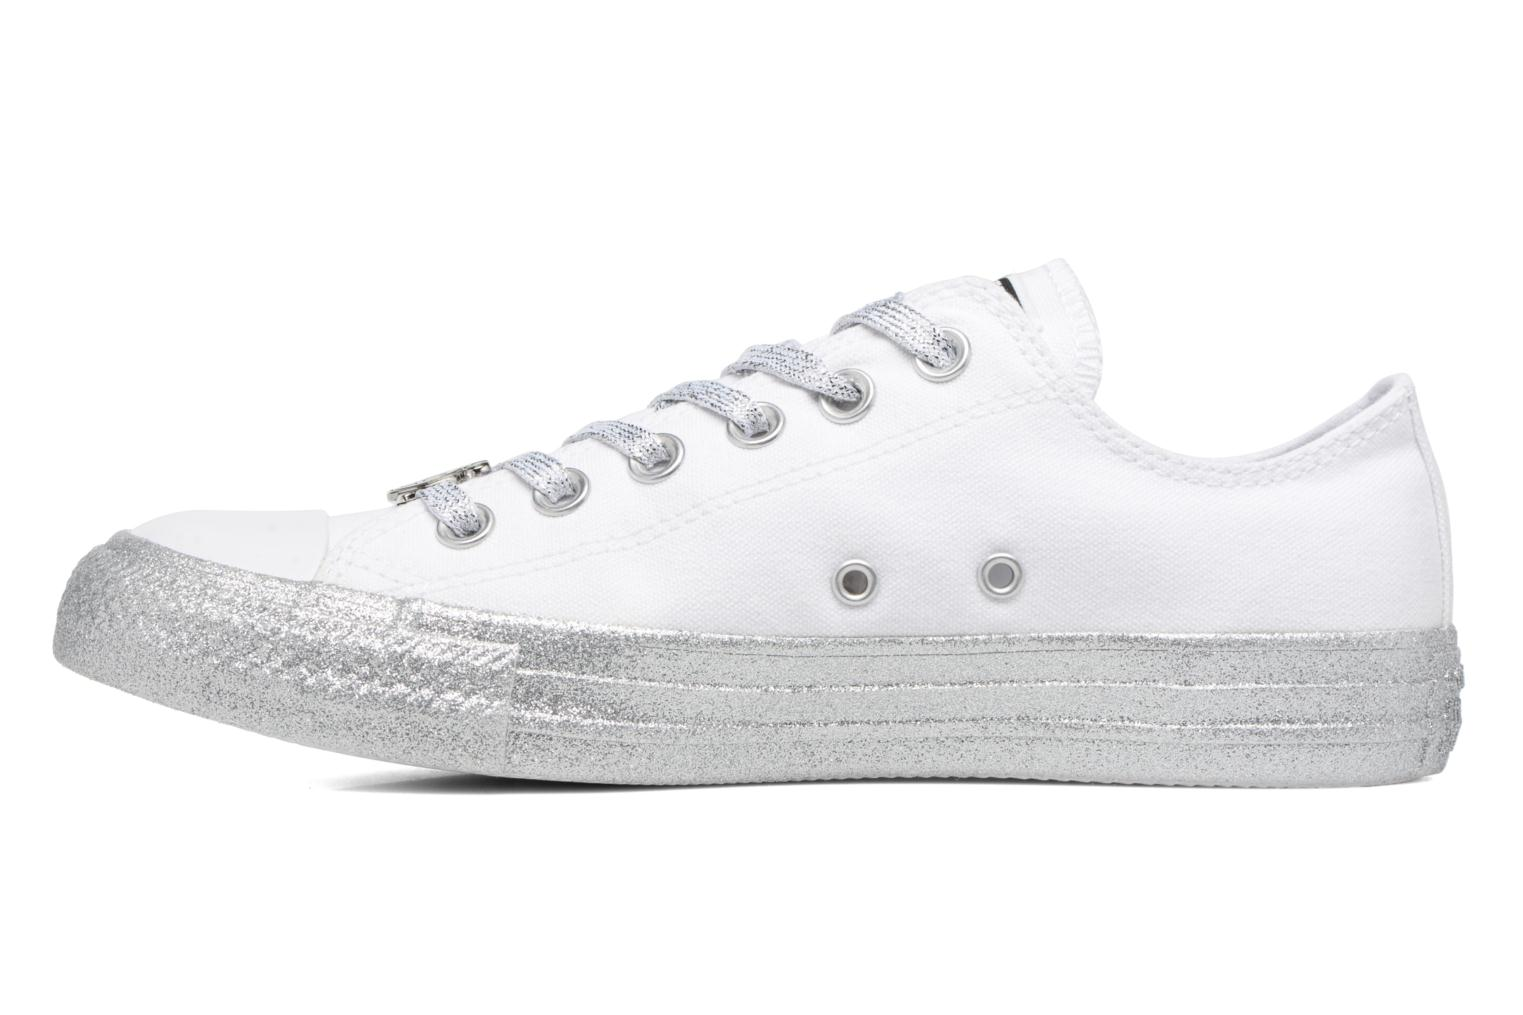 2018 Nieuwste In Nederland Te Koop Converse Converse x Miley Cyrus Chuck Taylor All Star Ox Wit 18RIHs